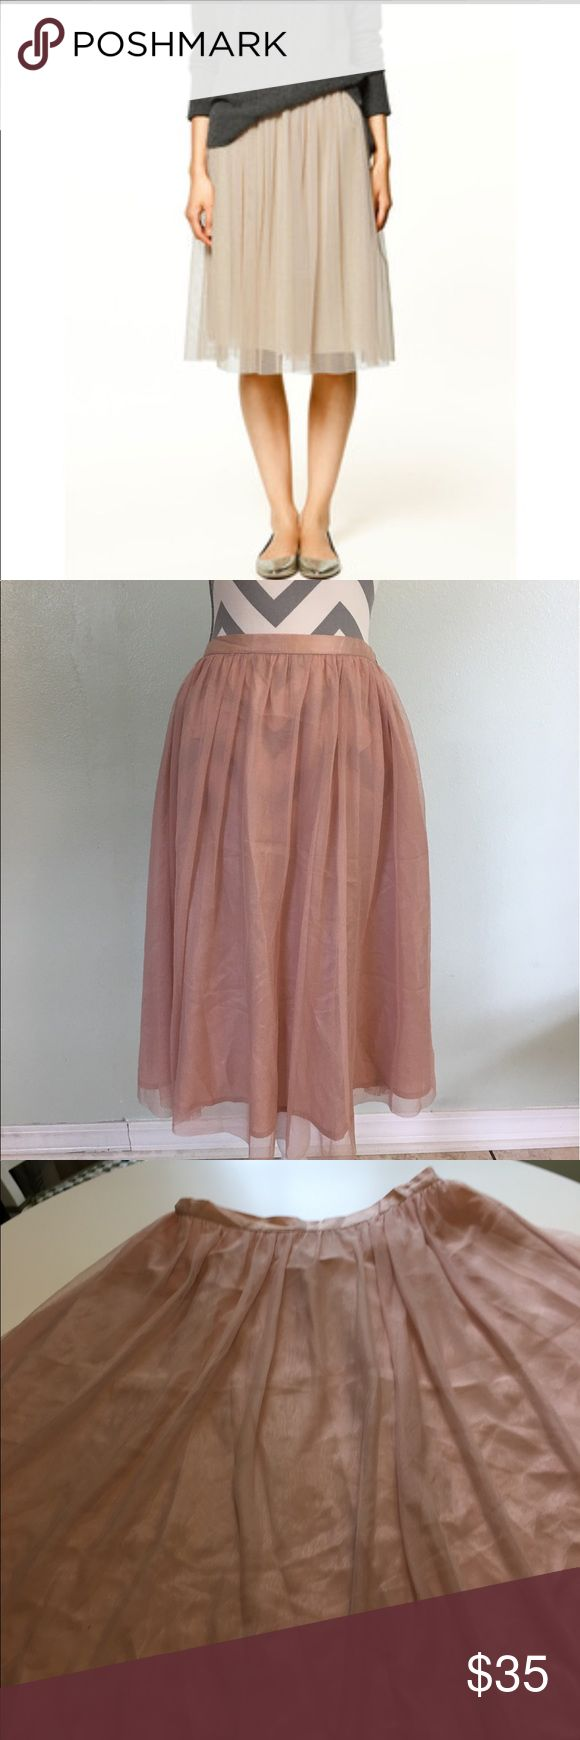 🎉HP 6/5/17🎉Zara Tulle Skirt This tulle skirt is satin style lining with tulle over lay.  Front waist satin look and back is elastic stretch.   Last pic shows 3 pin size spots. Not noticeable when wearing.   On tulle so dry clean and should come off.  Pricing low to help with dry cleaning.            (pk#22) Zara Skirts Midi